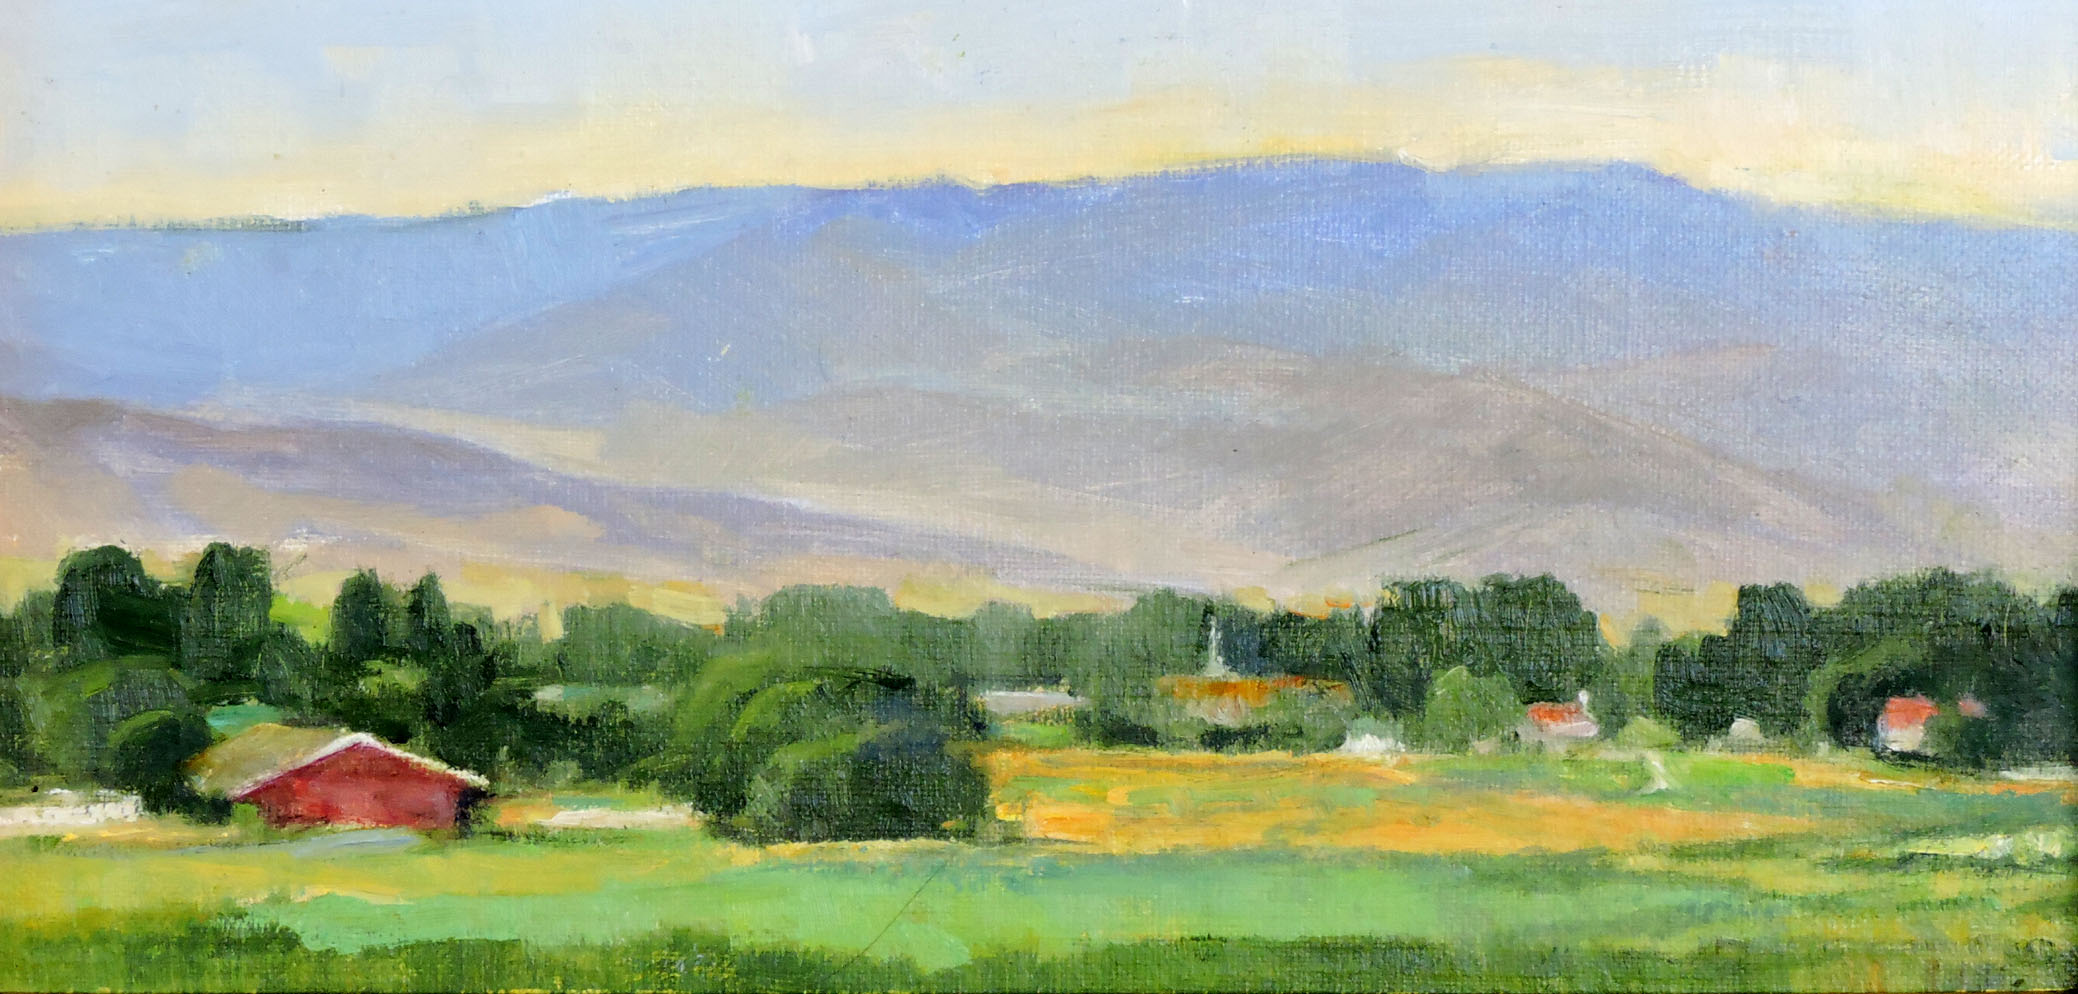 Edge of Town, 8 x 16, plein air